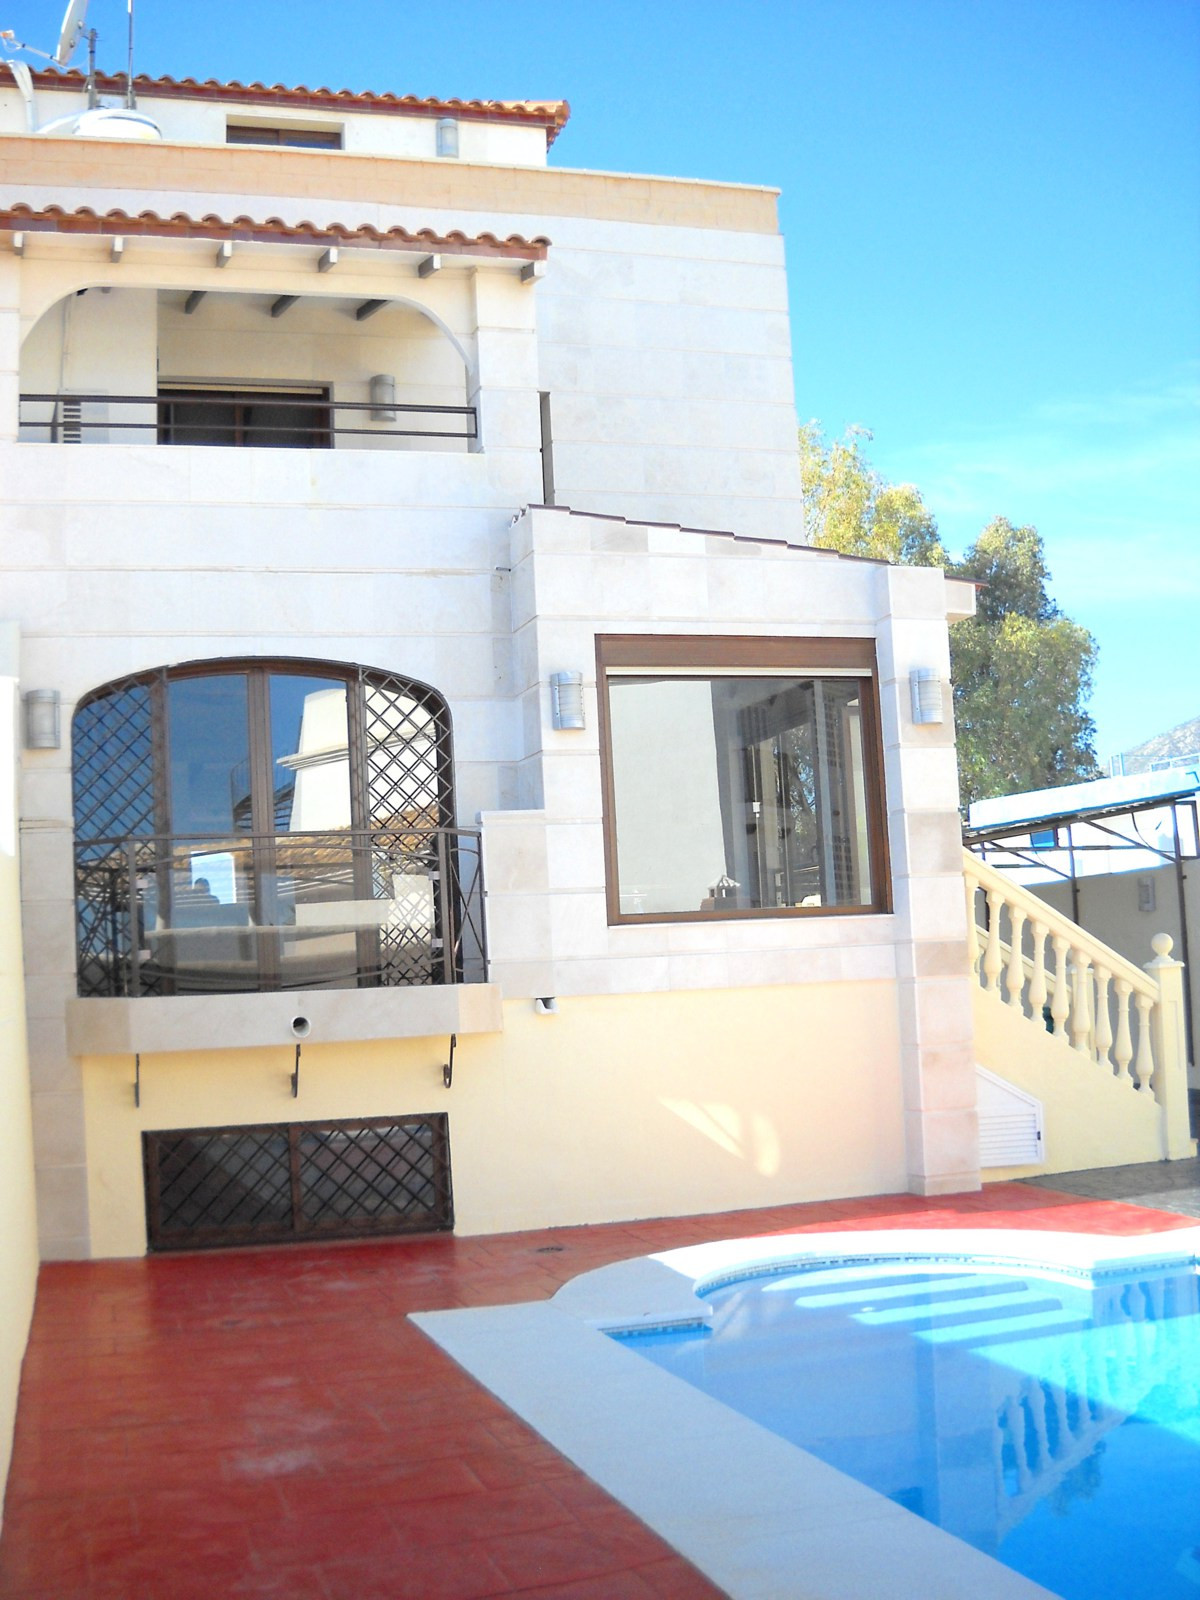 Sale 2 matched identical. Each has a private swimming pool, indoor parking for several cars, barbecu,Spain